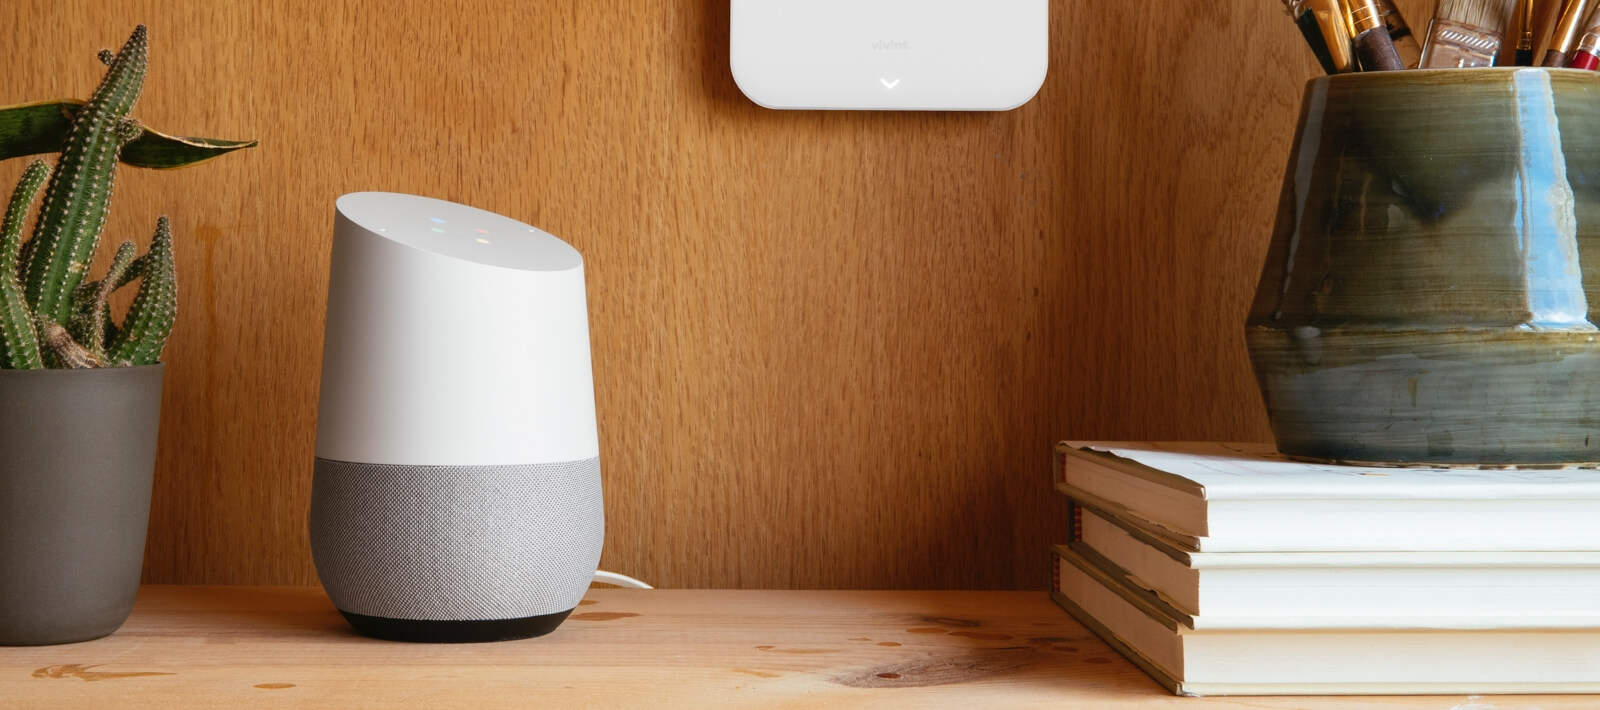 Vivint and Google Home